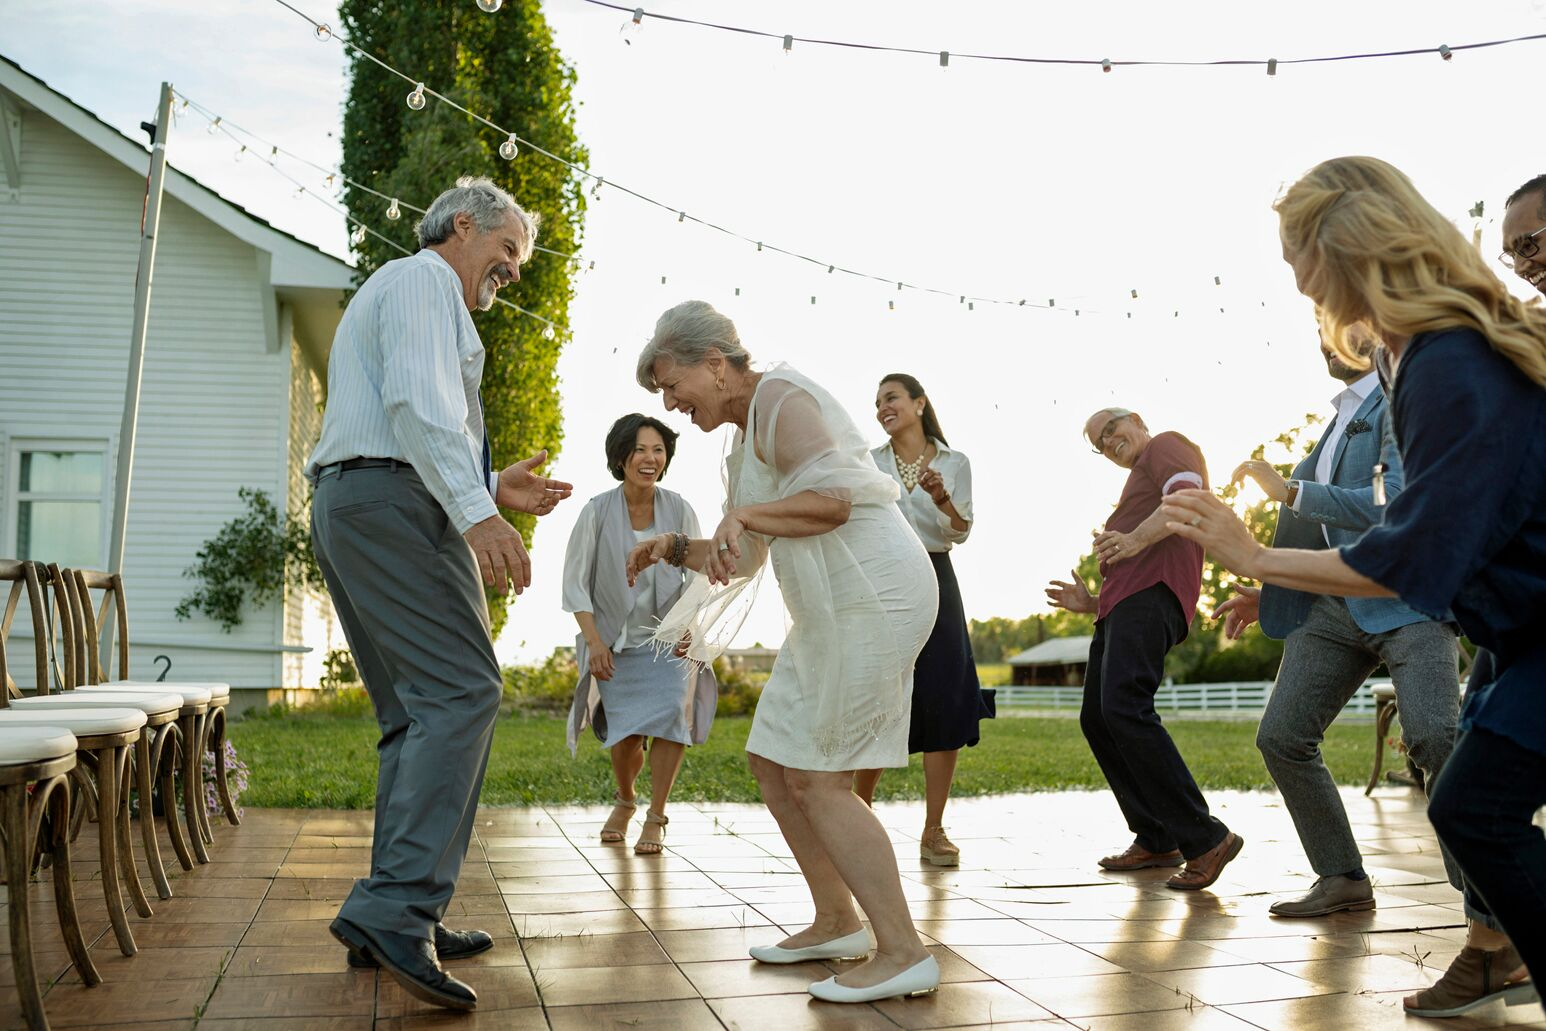 Elderly people dance during a party. William Healy, MD, explains as Baby Boomers and the population ages, it increases the need for advanced total joint replacements.